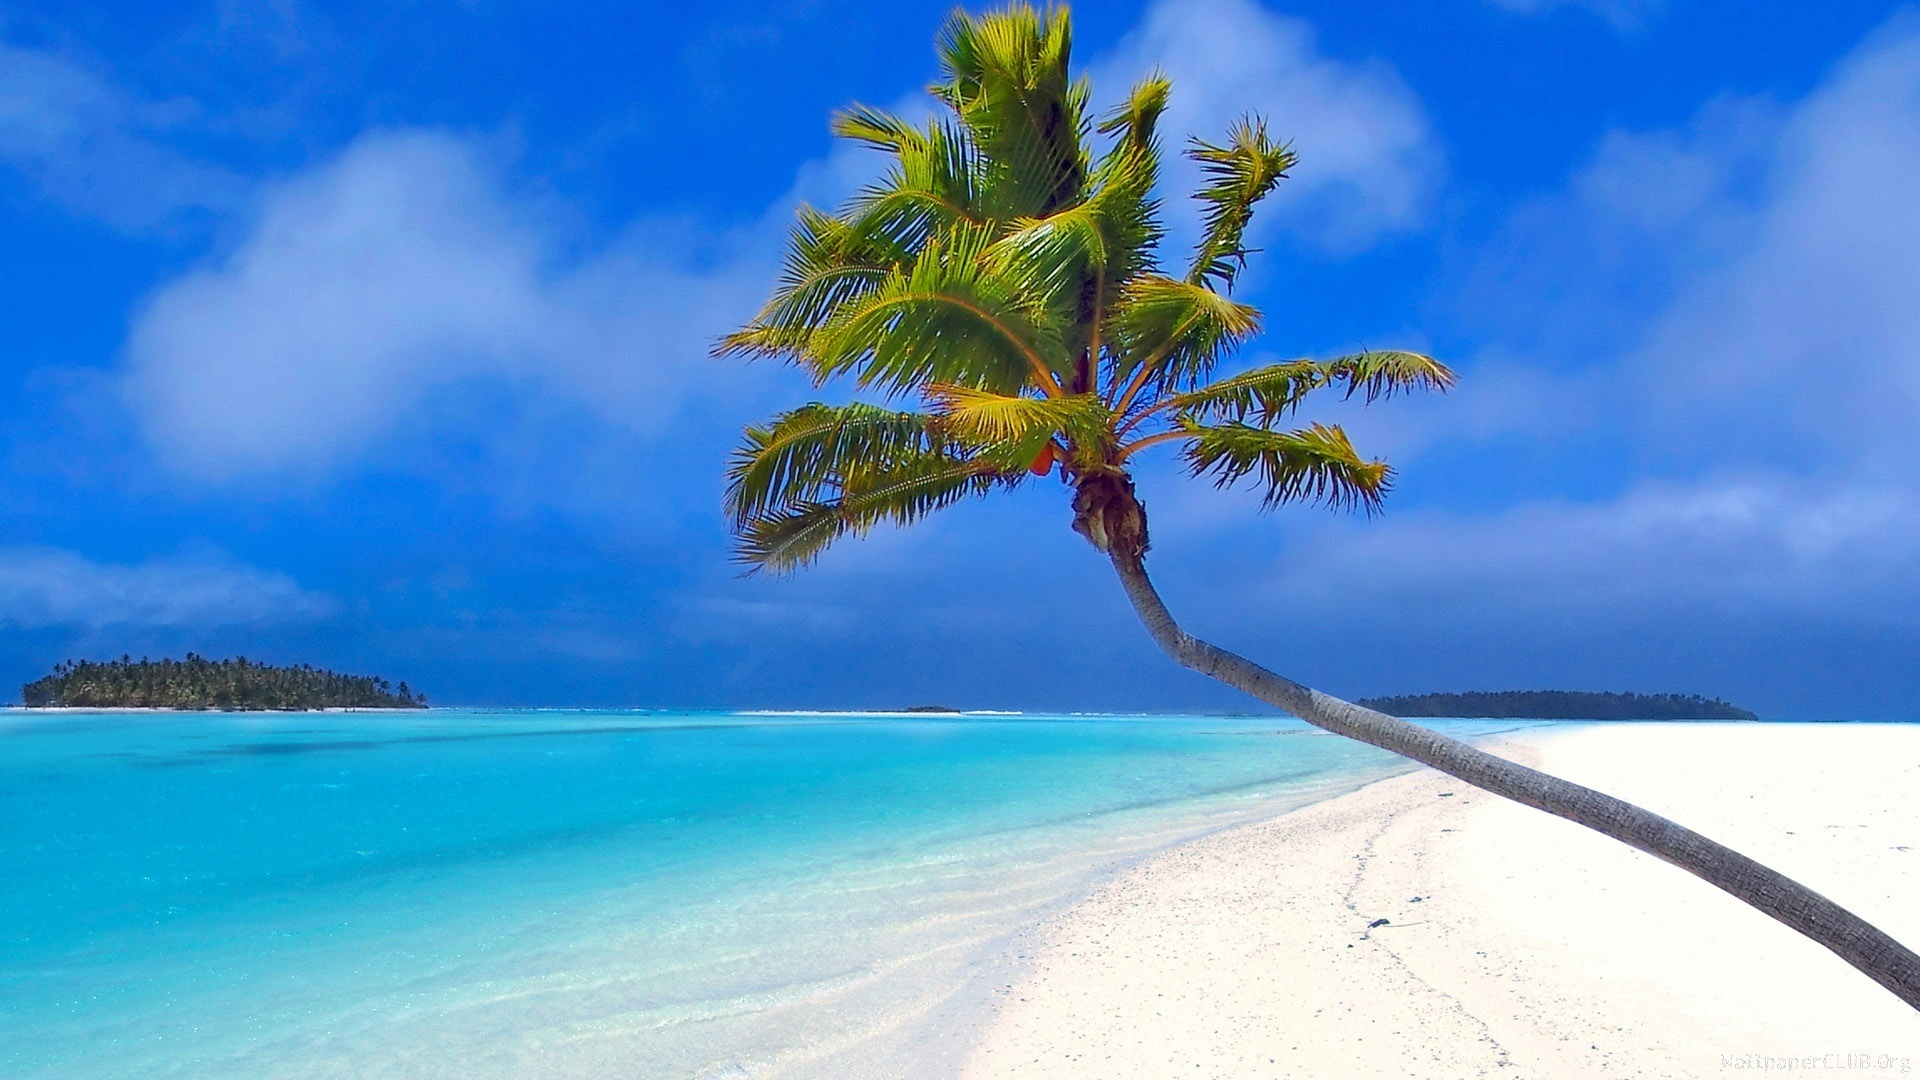 Wallpaper Hd 1920x1080 Beach: Wallpapers Full Hd Palm Tree Top Maldives Beach 1920x1080px